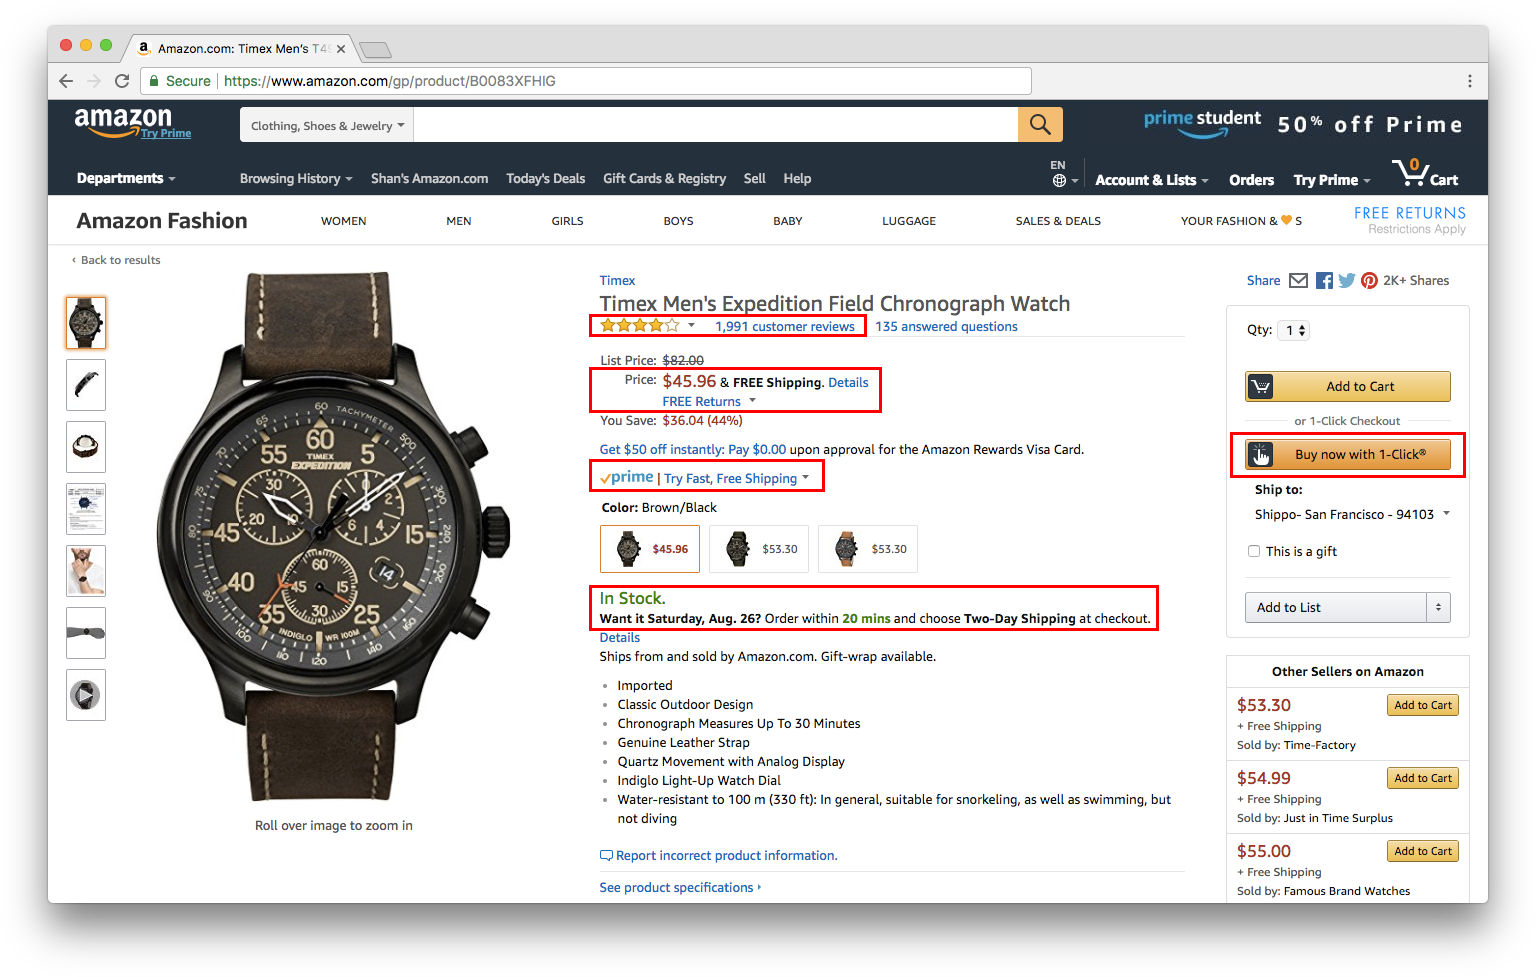 Amazon Product Page Screenshot